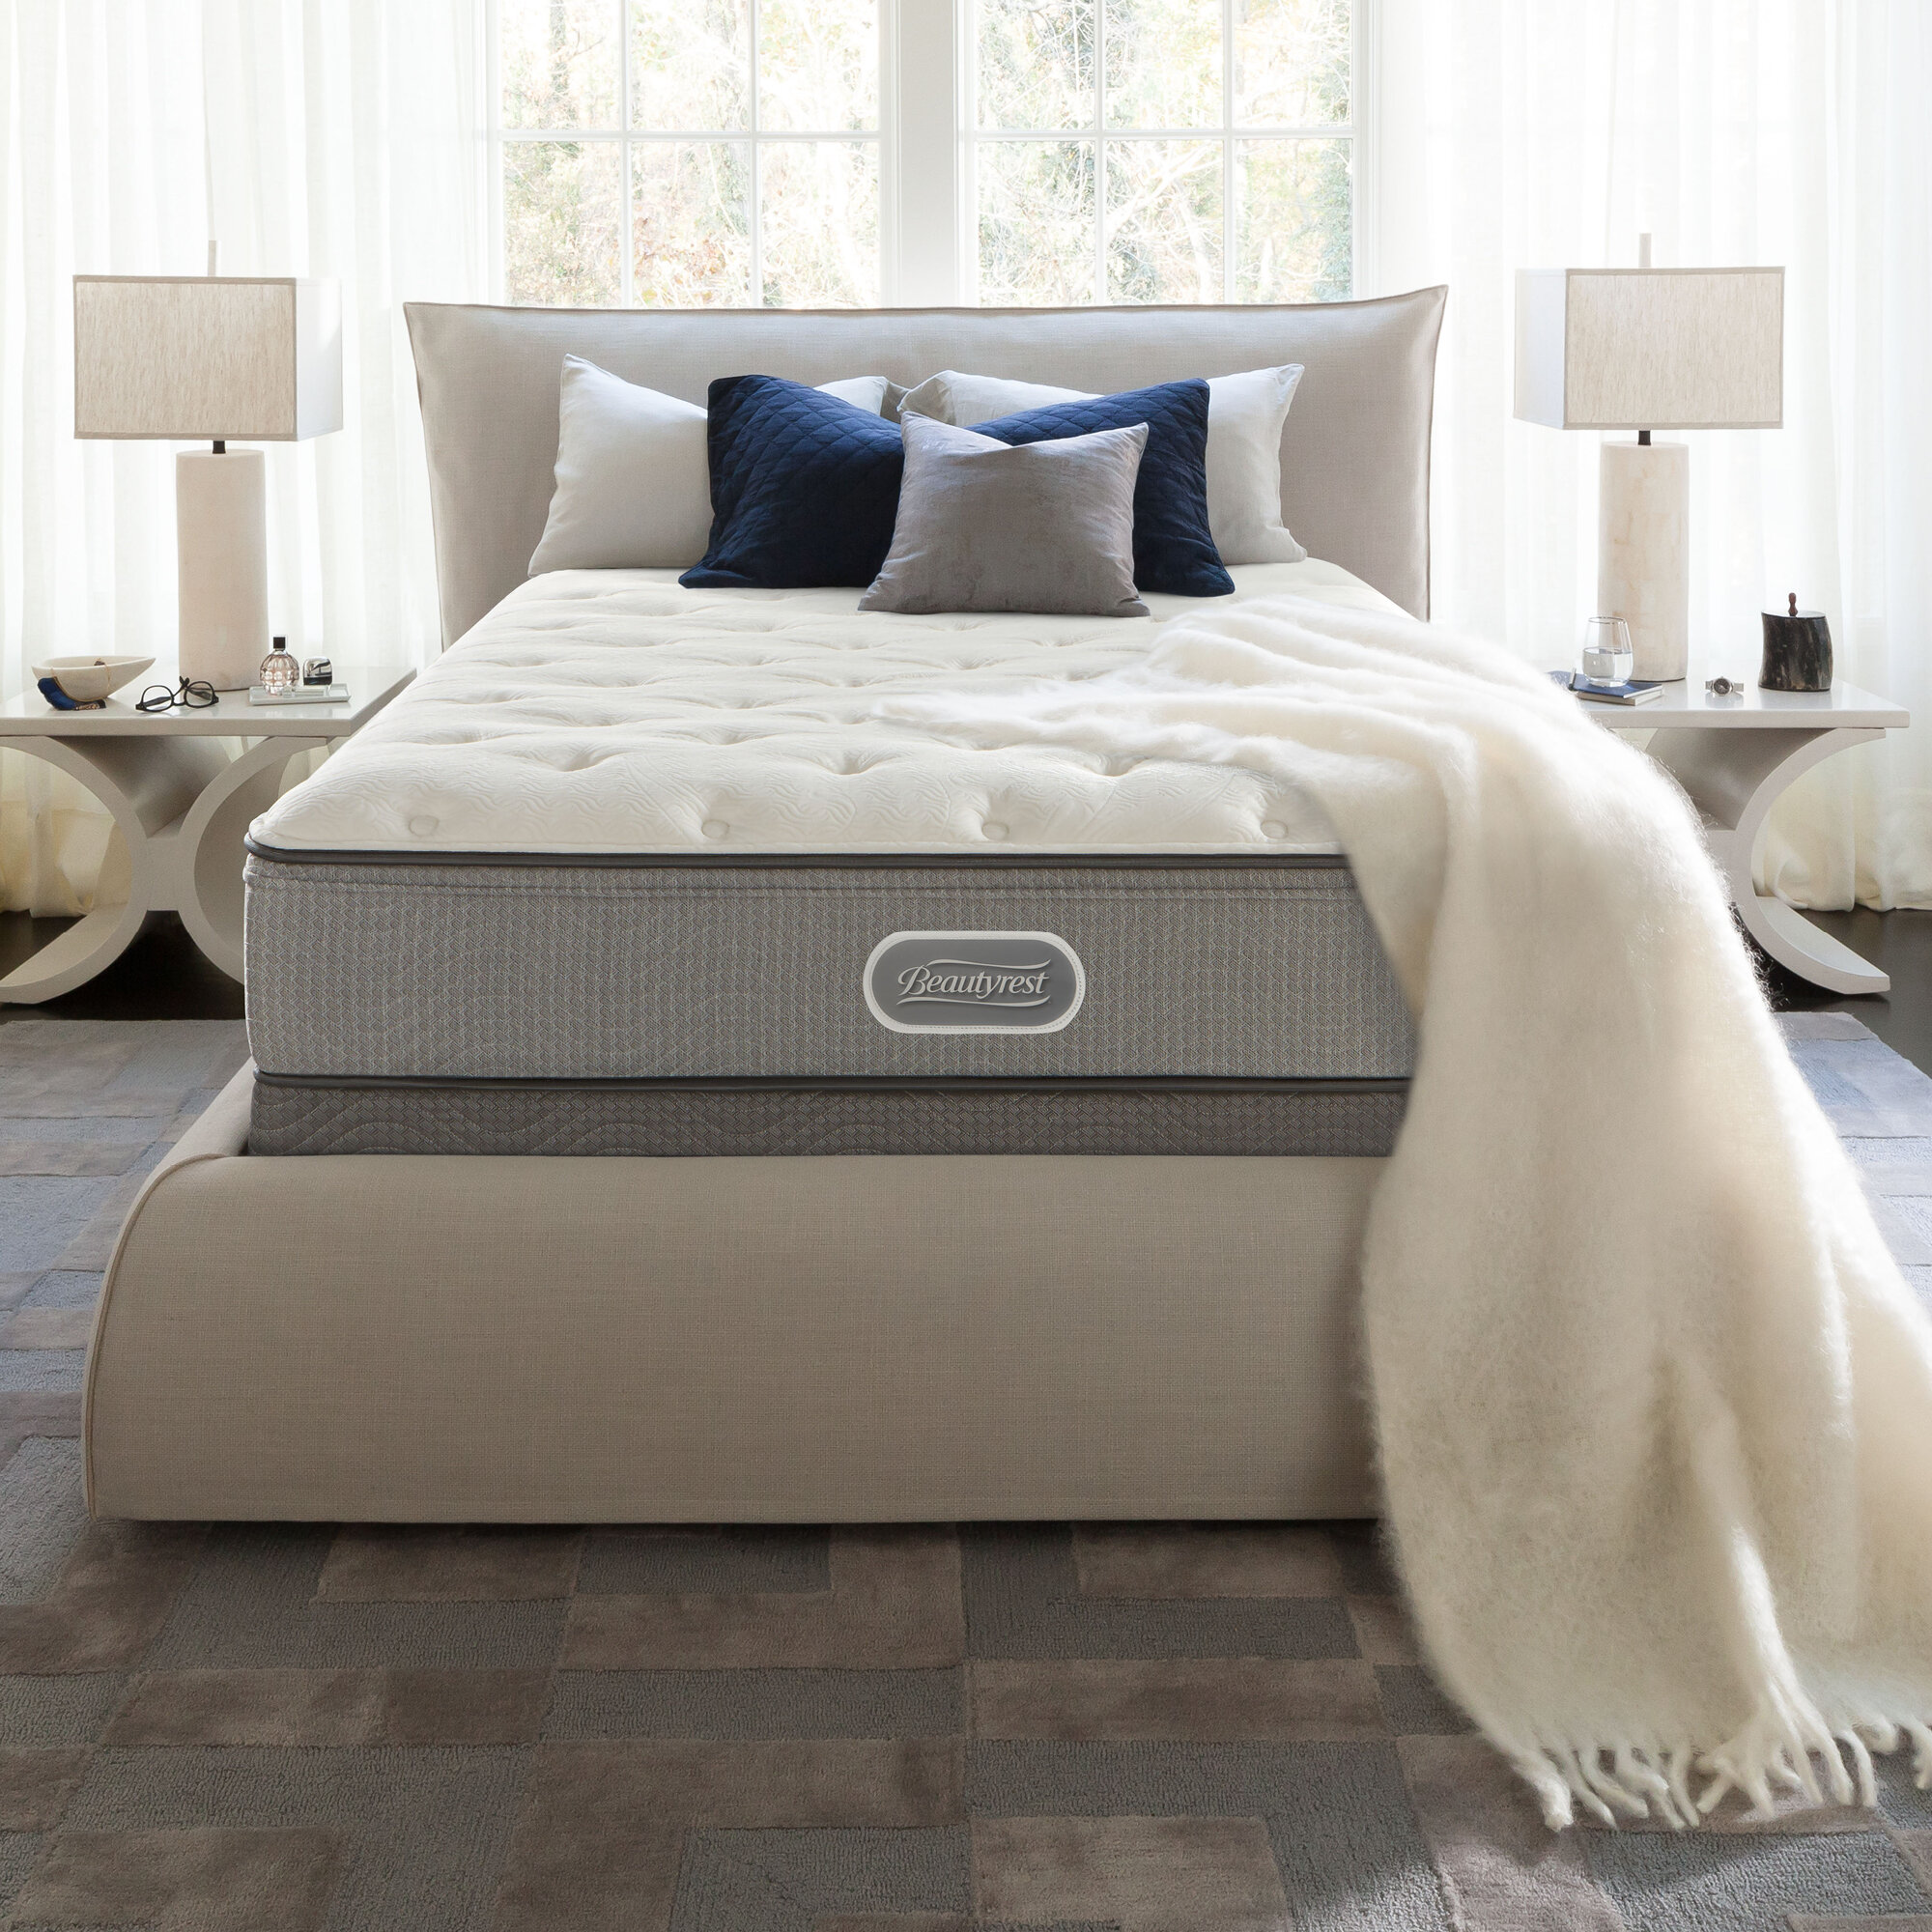 bedmaster top p next microfibre day duvet with topper double htm pillow and set tog select signature mattress